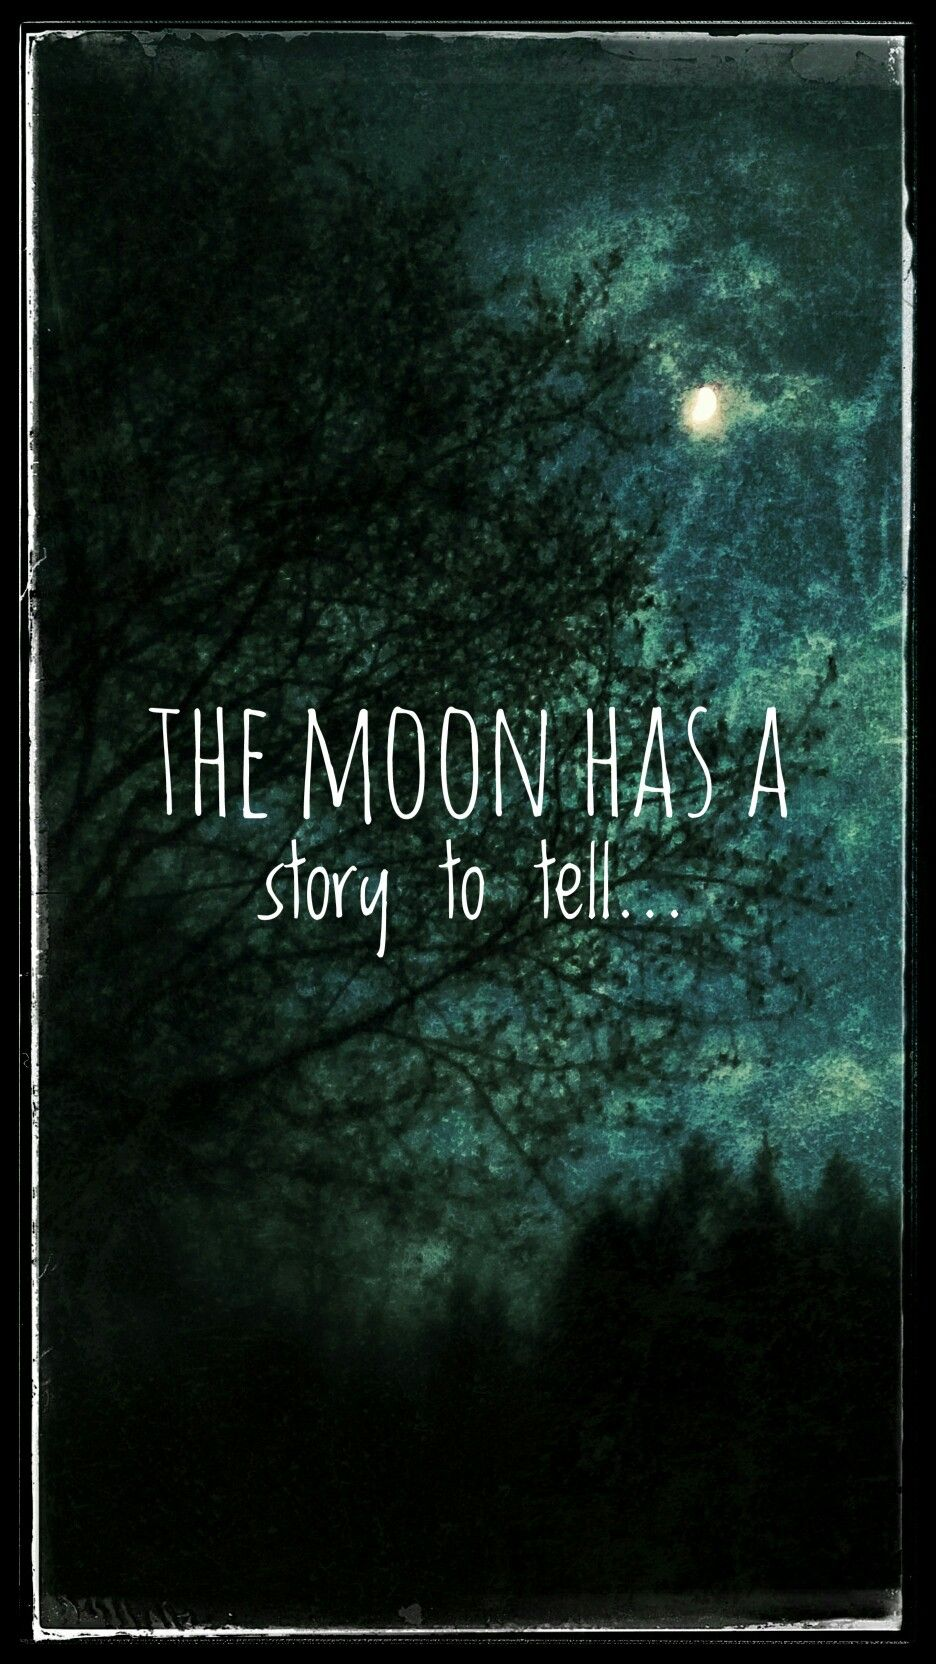 Read about what the moon has to say in #themagickalfamily www.monicacrosson.com